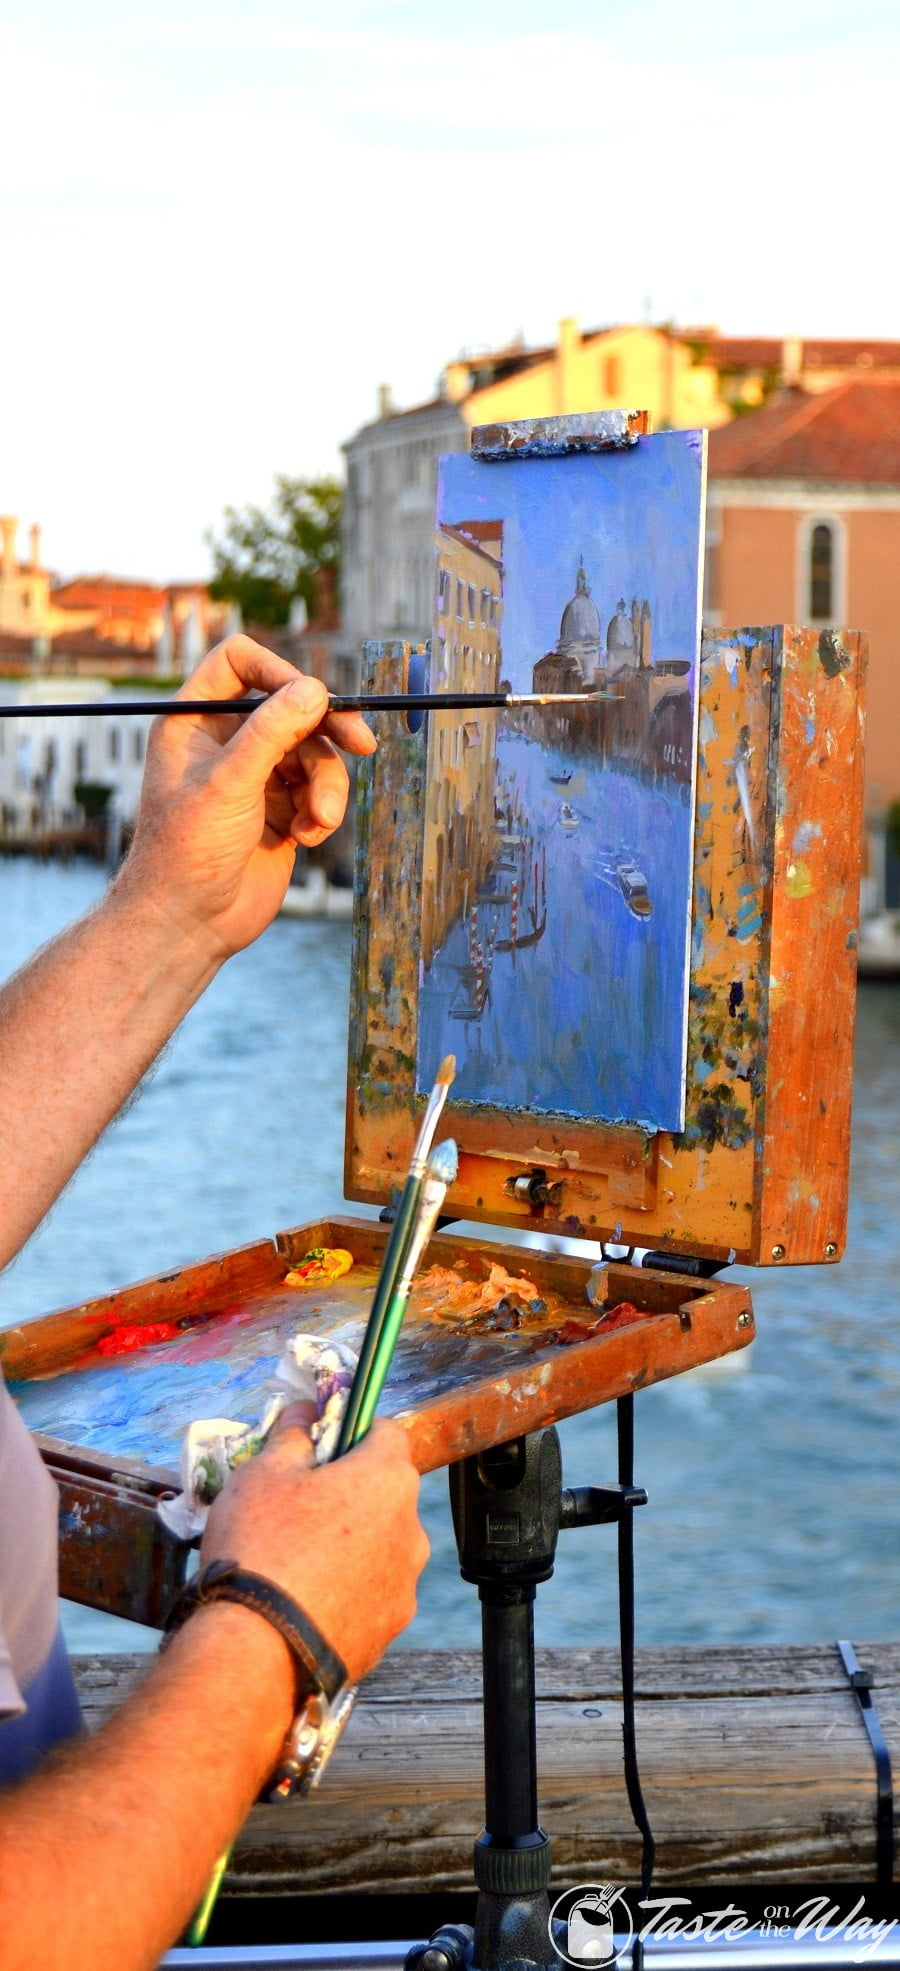 One of the top 10 fun #ThingsToDo in #Venice, #Italy is to enjoy the works of street artists. Check out for more! #travel #photography @tasteontheway